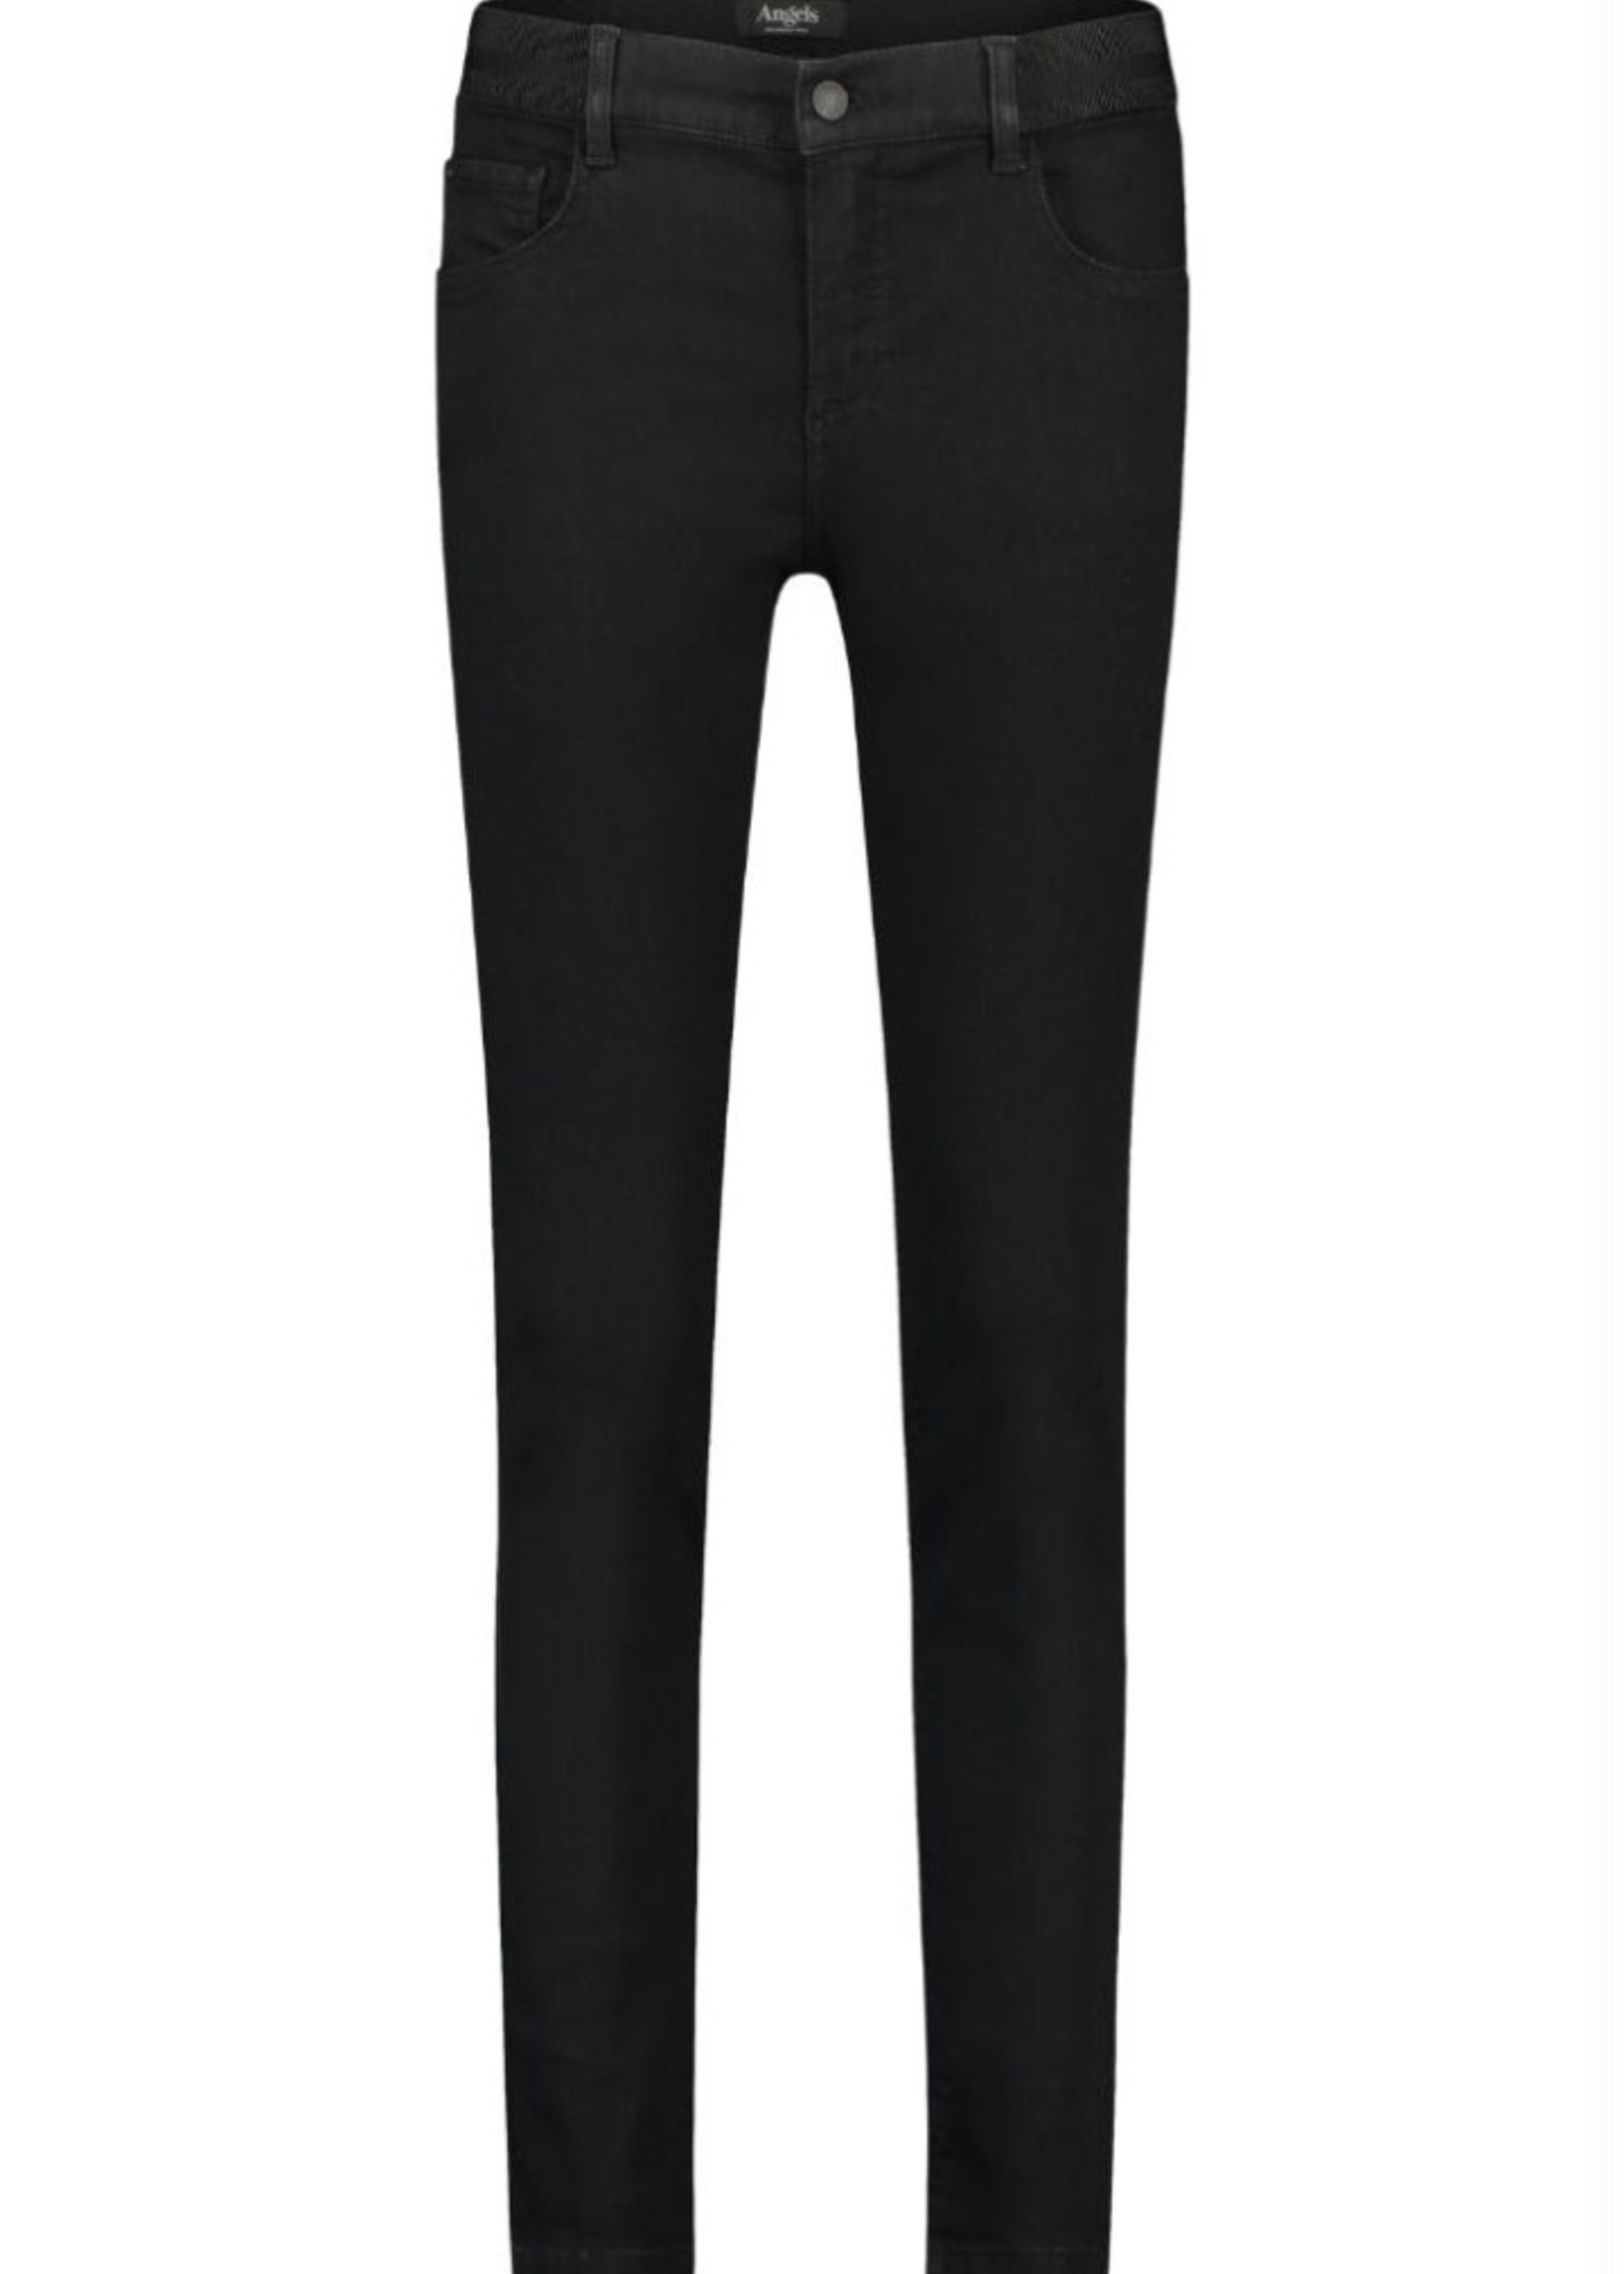 Angels Angels One Size Jeans Black